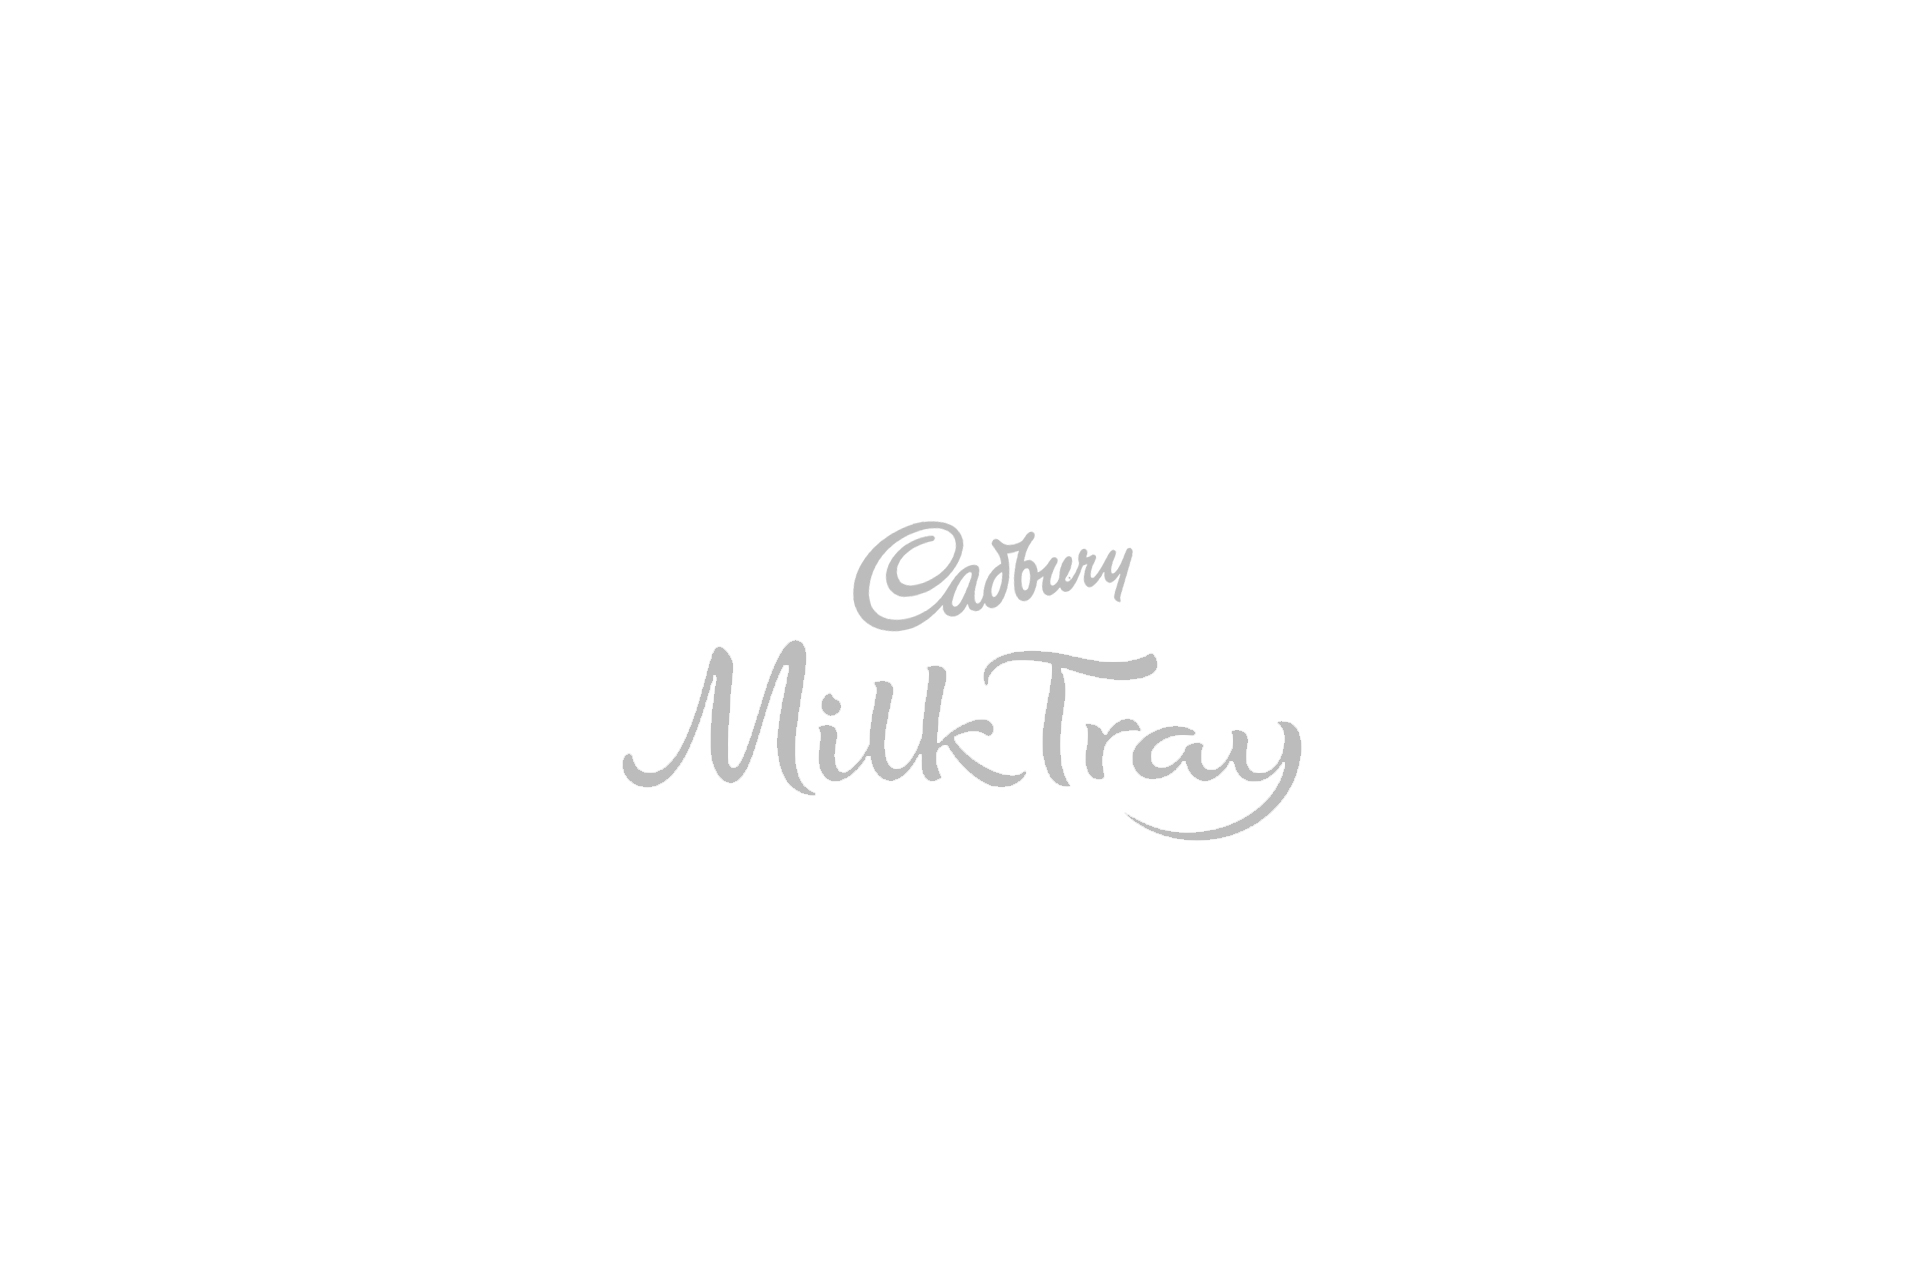 cadbury milk tray logo grey